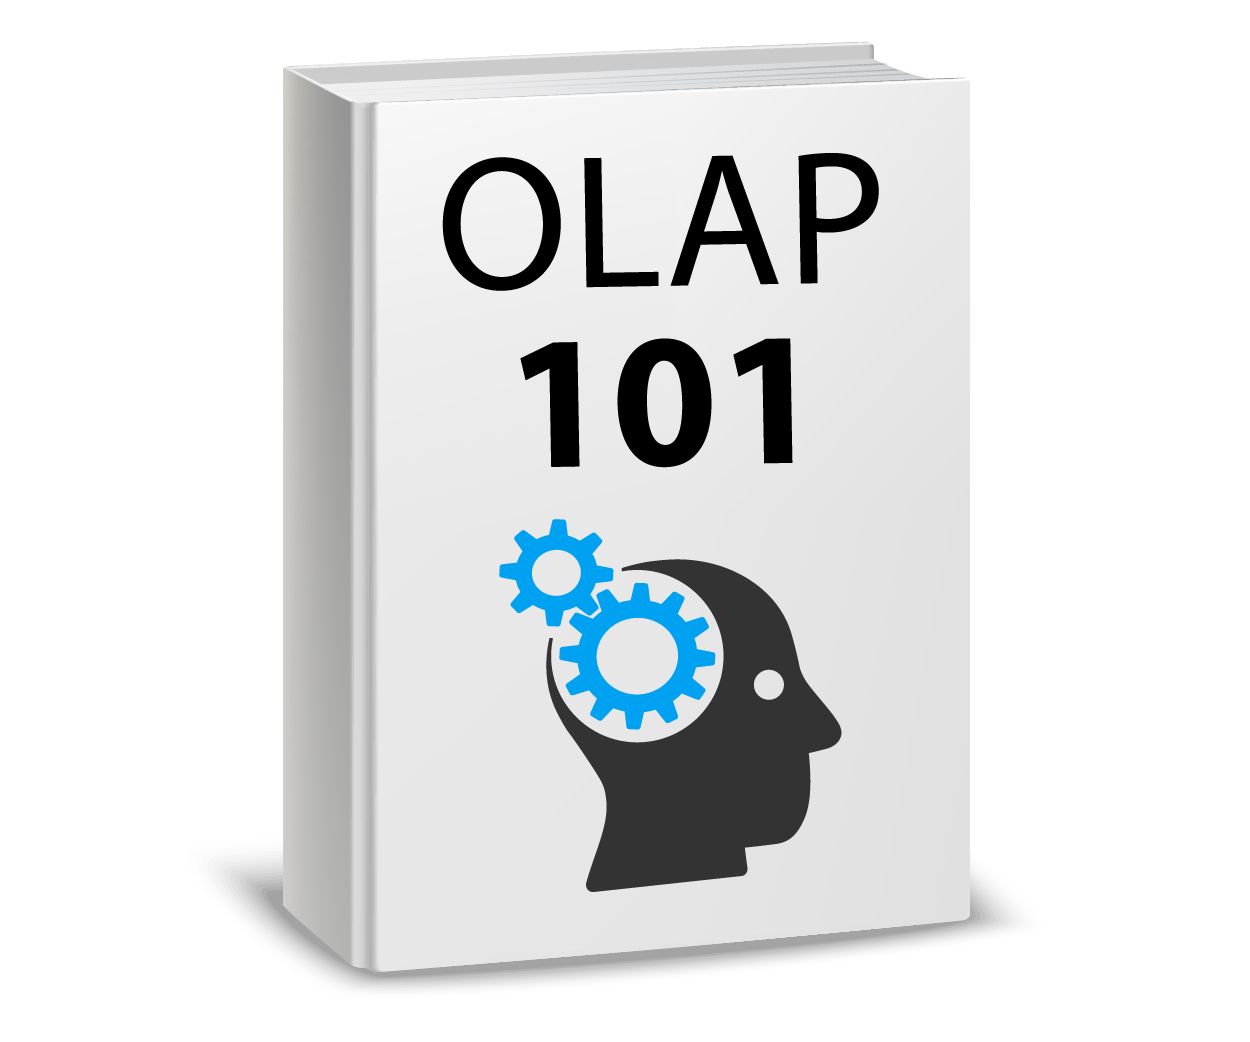 ebooks_olap101-01.png